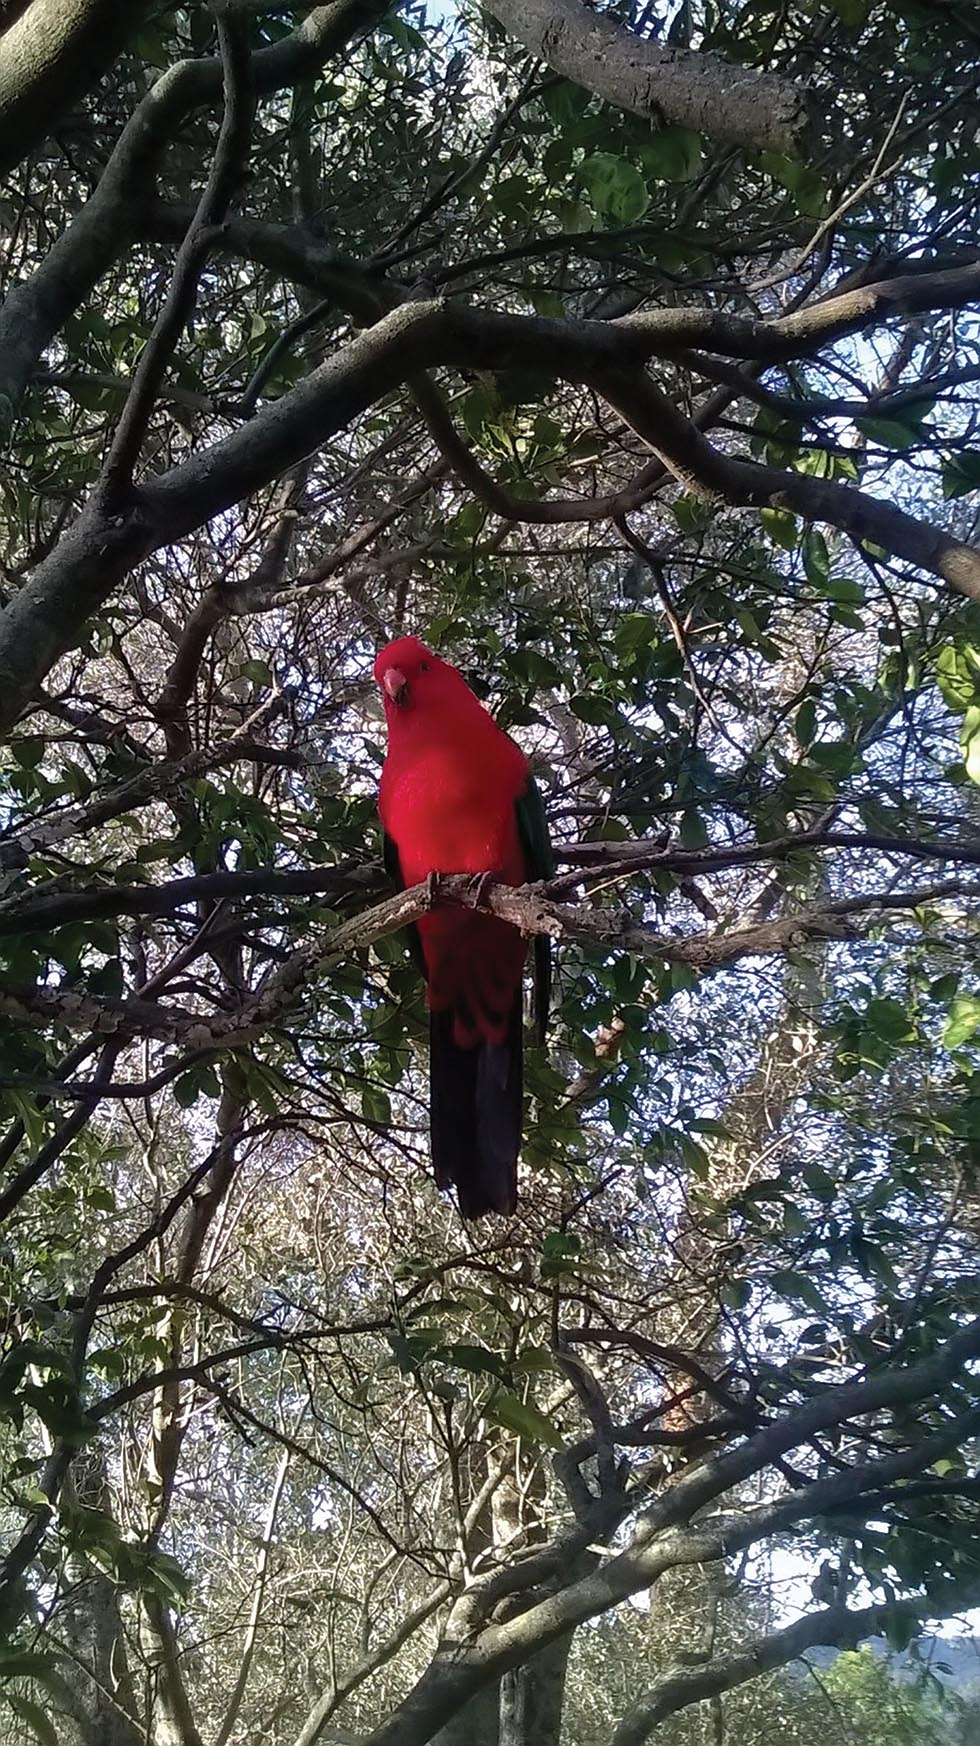 A King Parrot